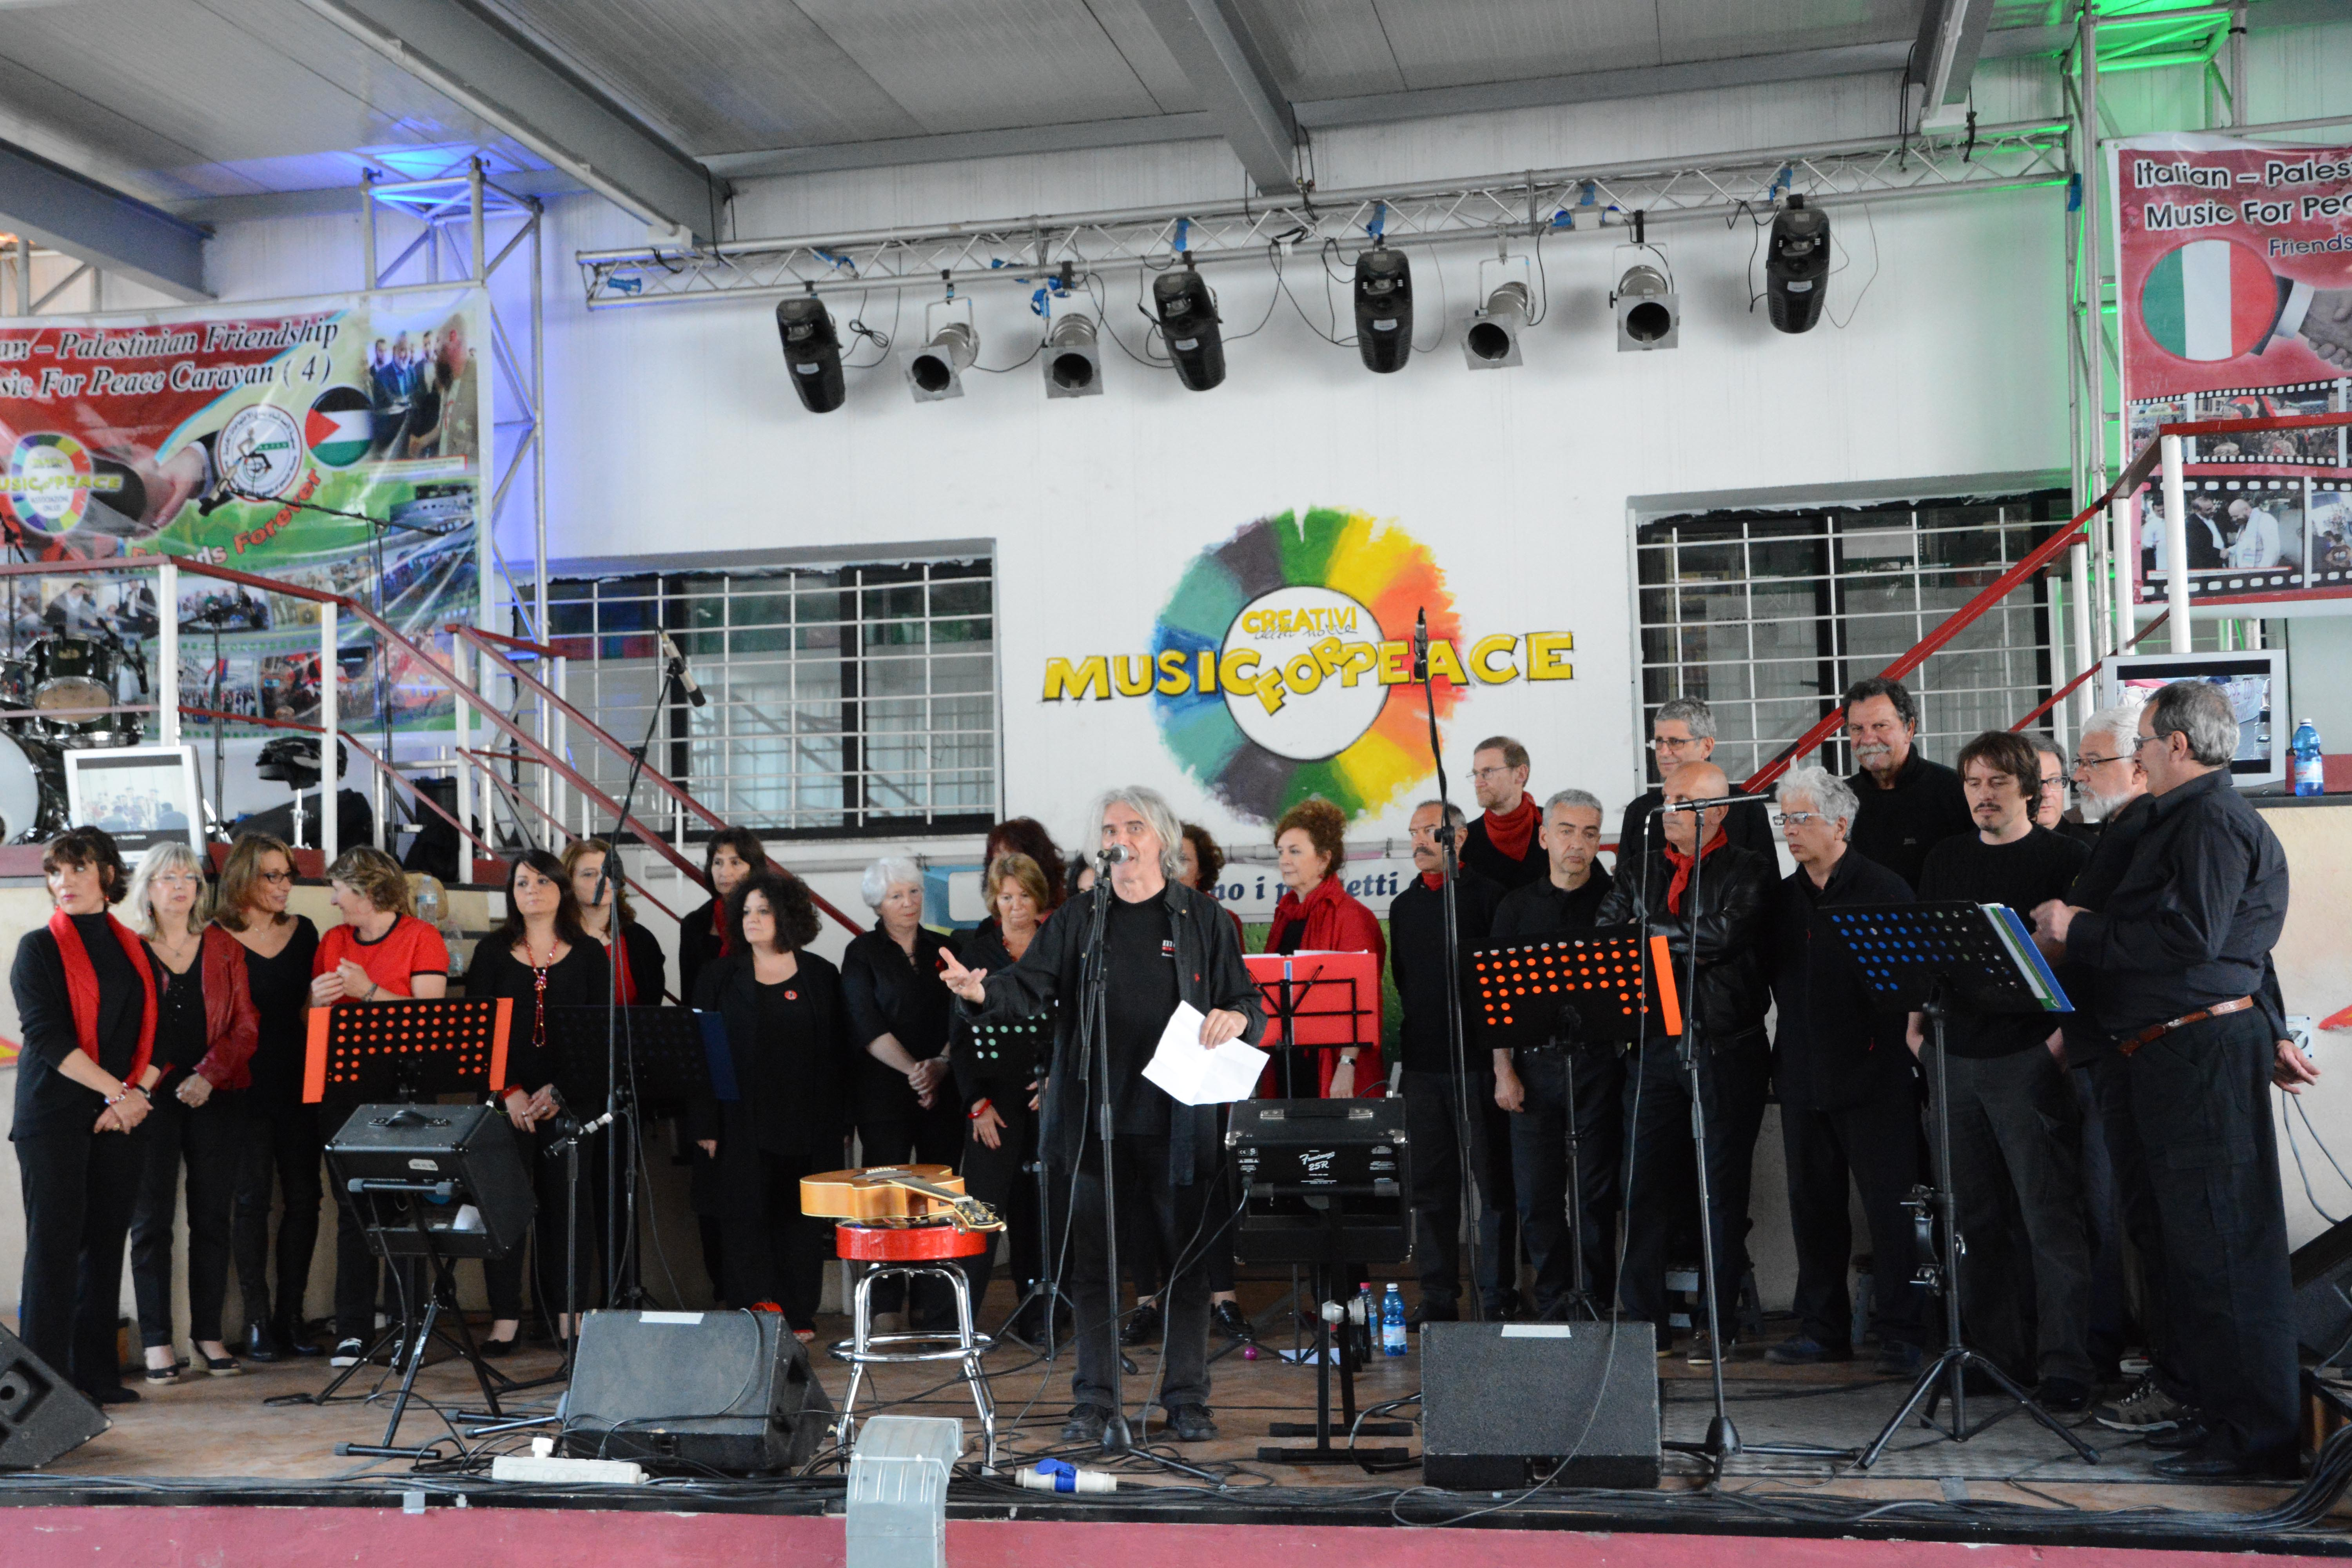 MUSIC FOR PEACE - GENOVA - 31 MAGGIO 2014.jpg